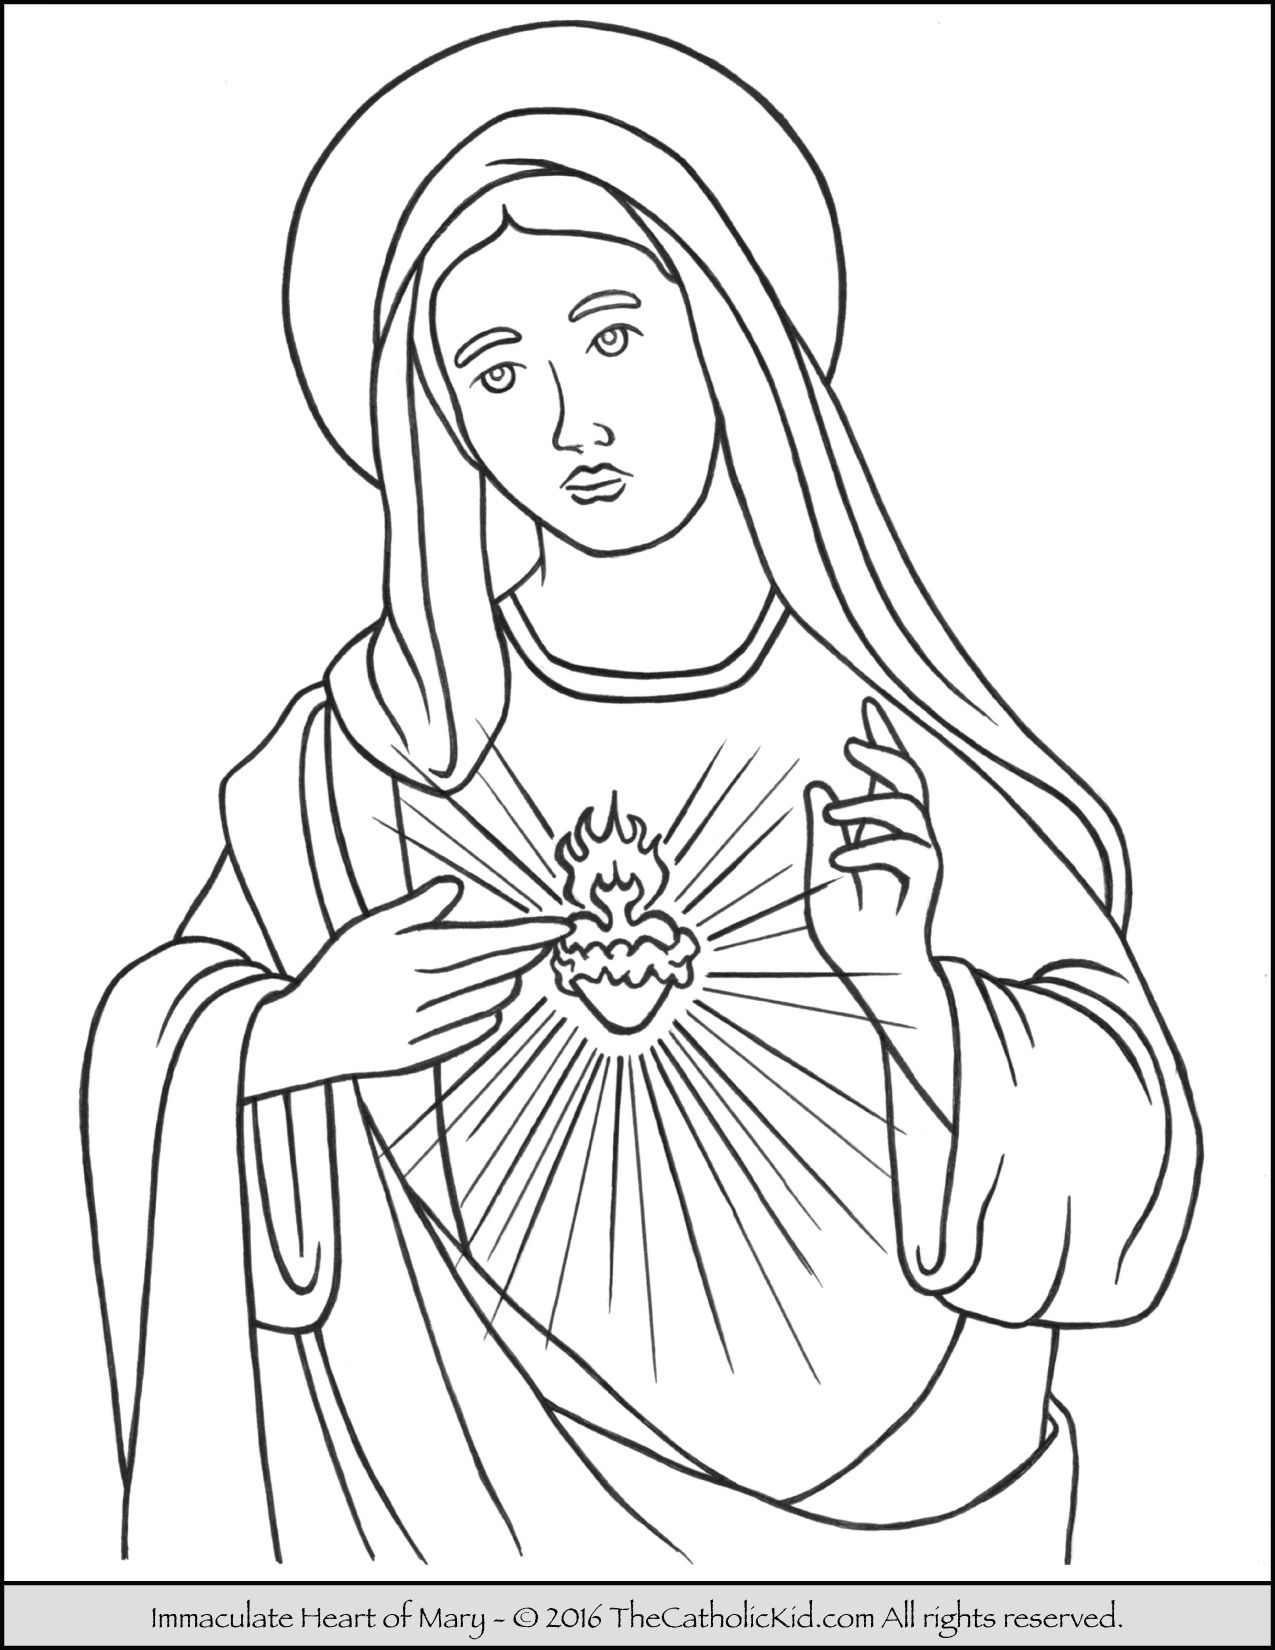 mary coloring pages # 2